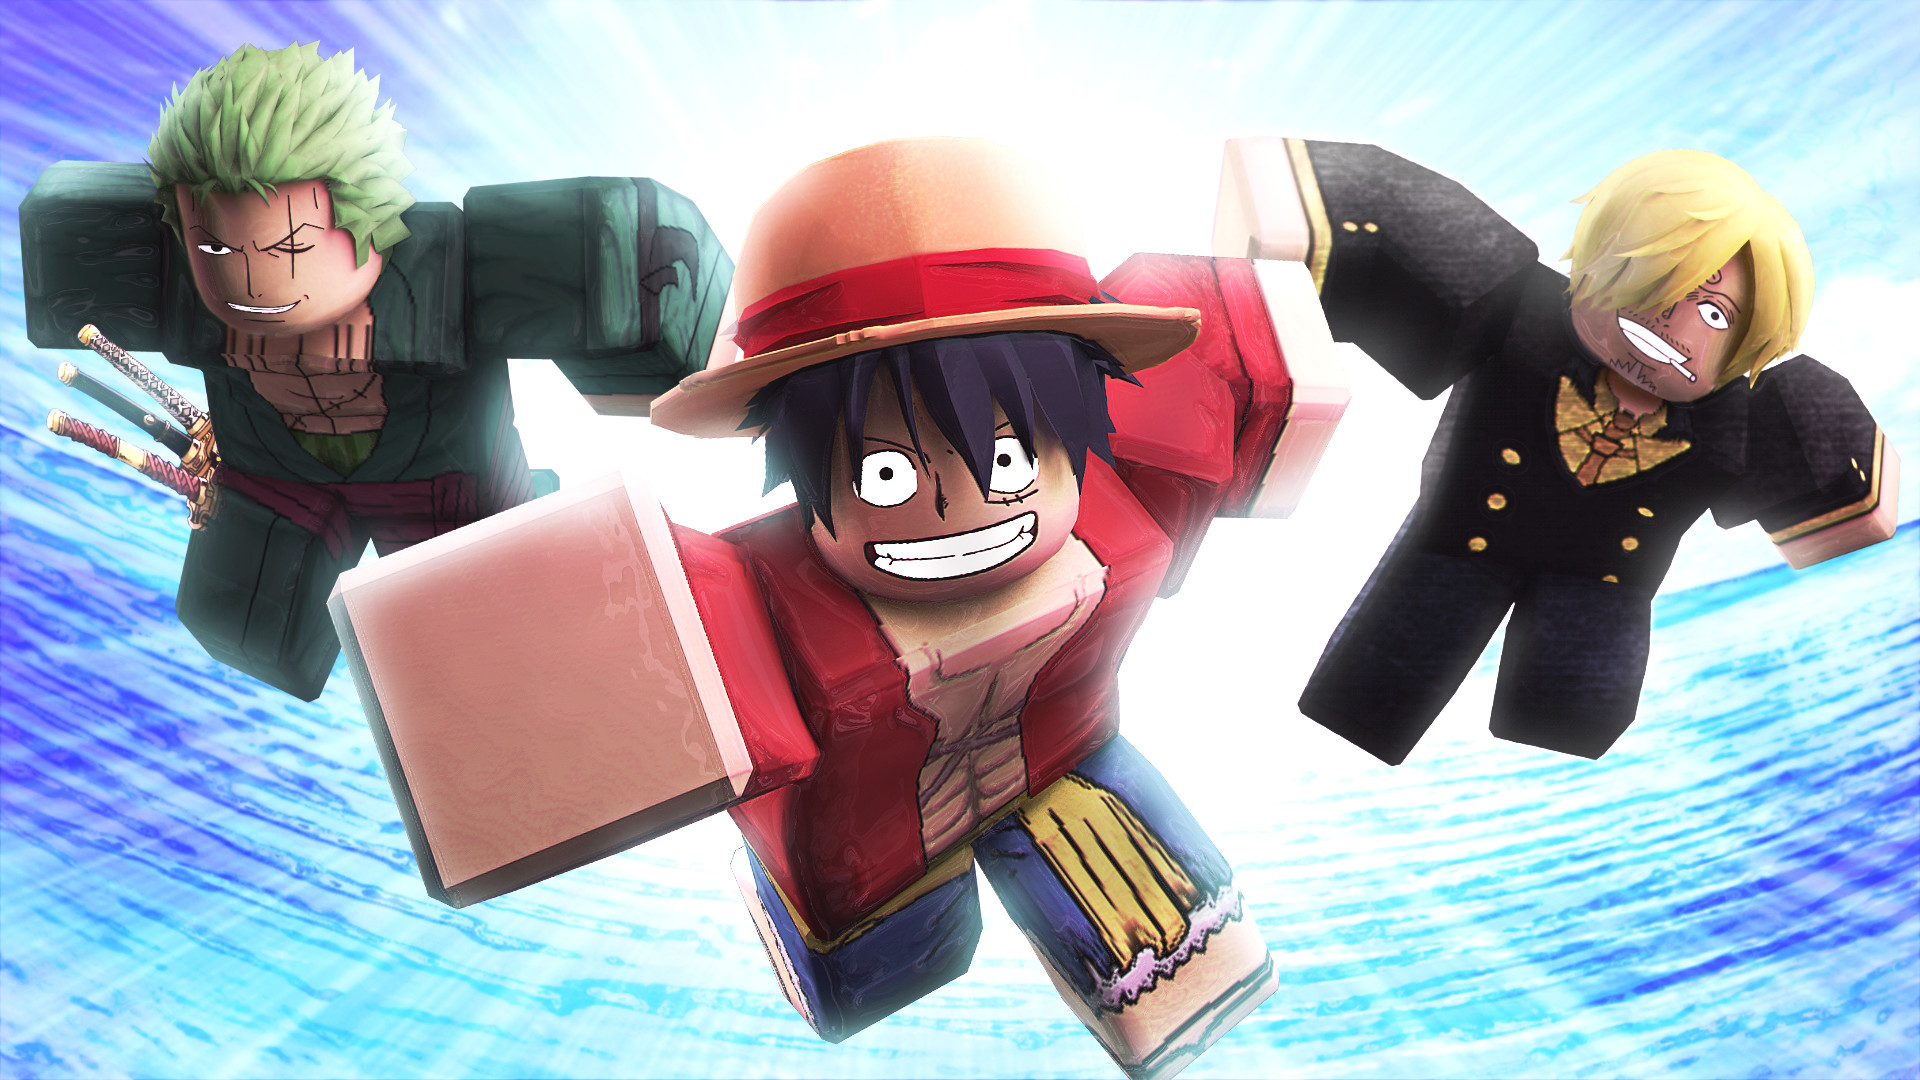 Artstation Roblox One Piece Gfx Luffy Zoro And Sanji Ham Duhham